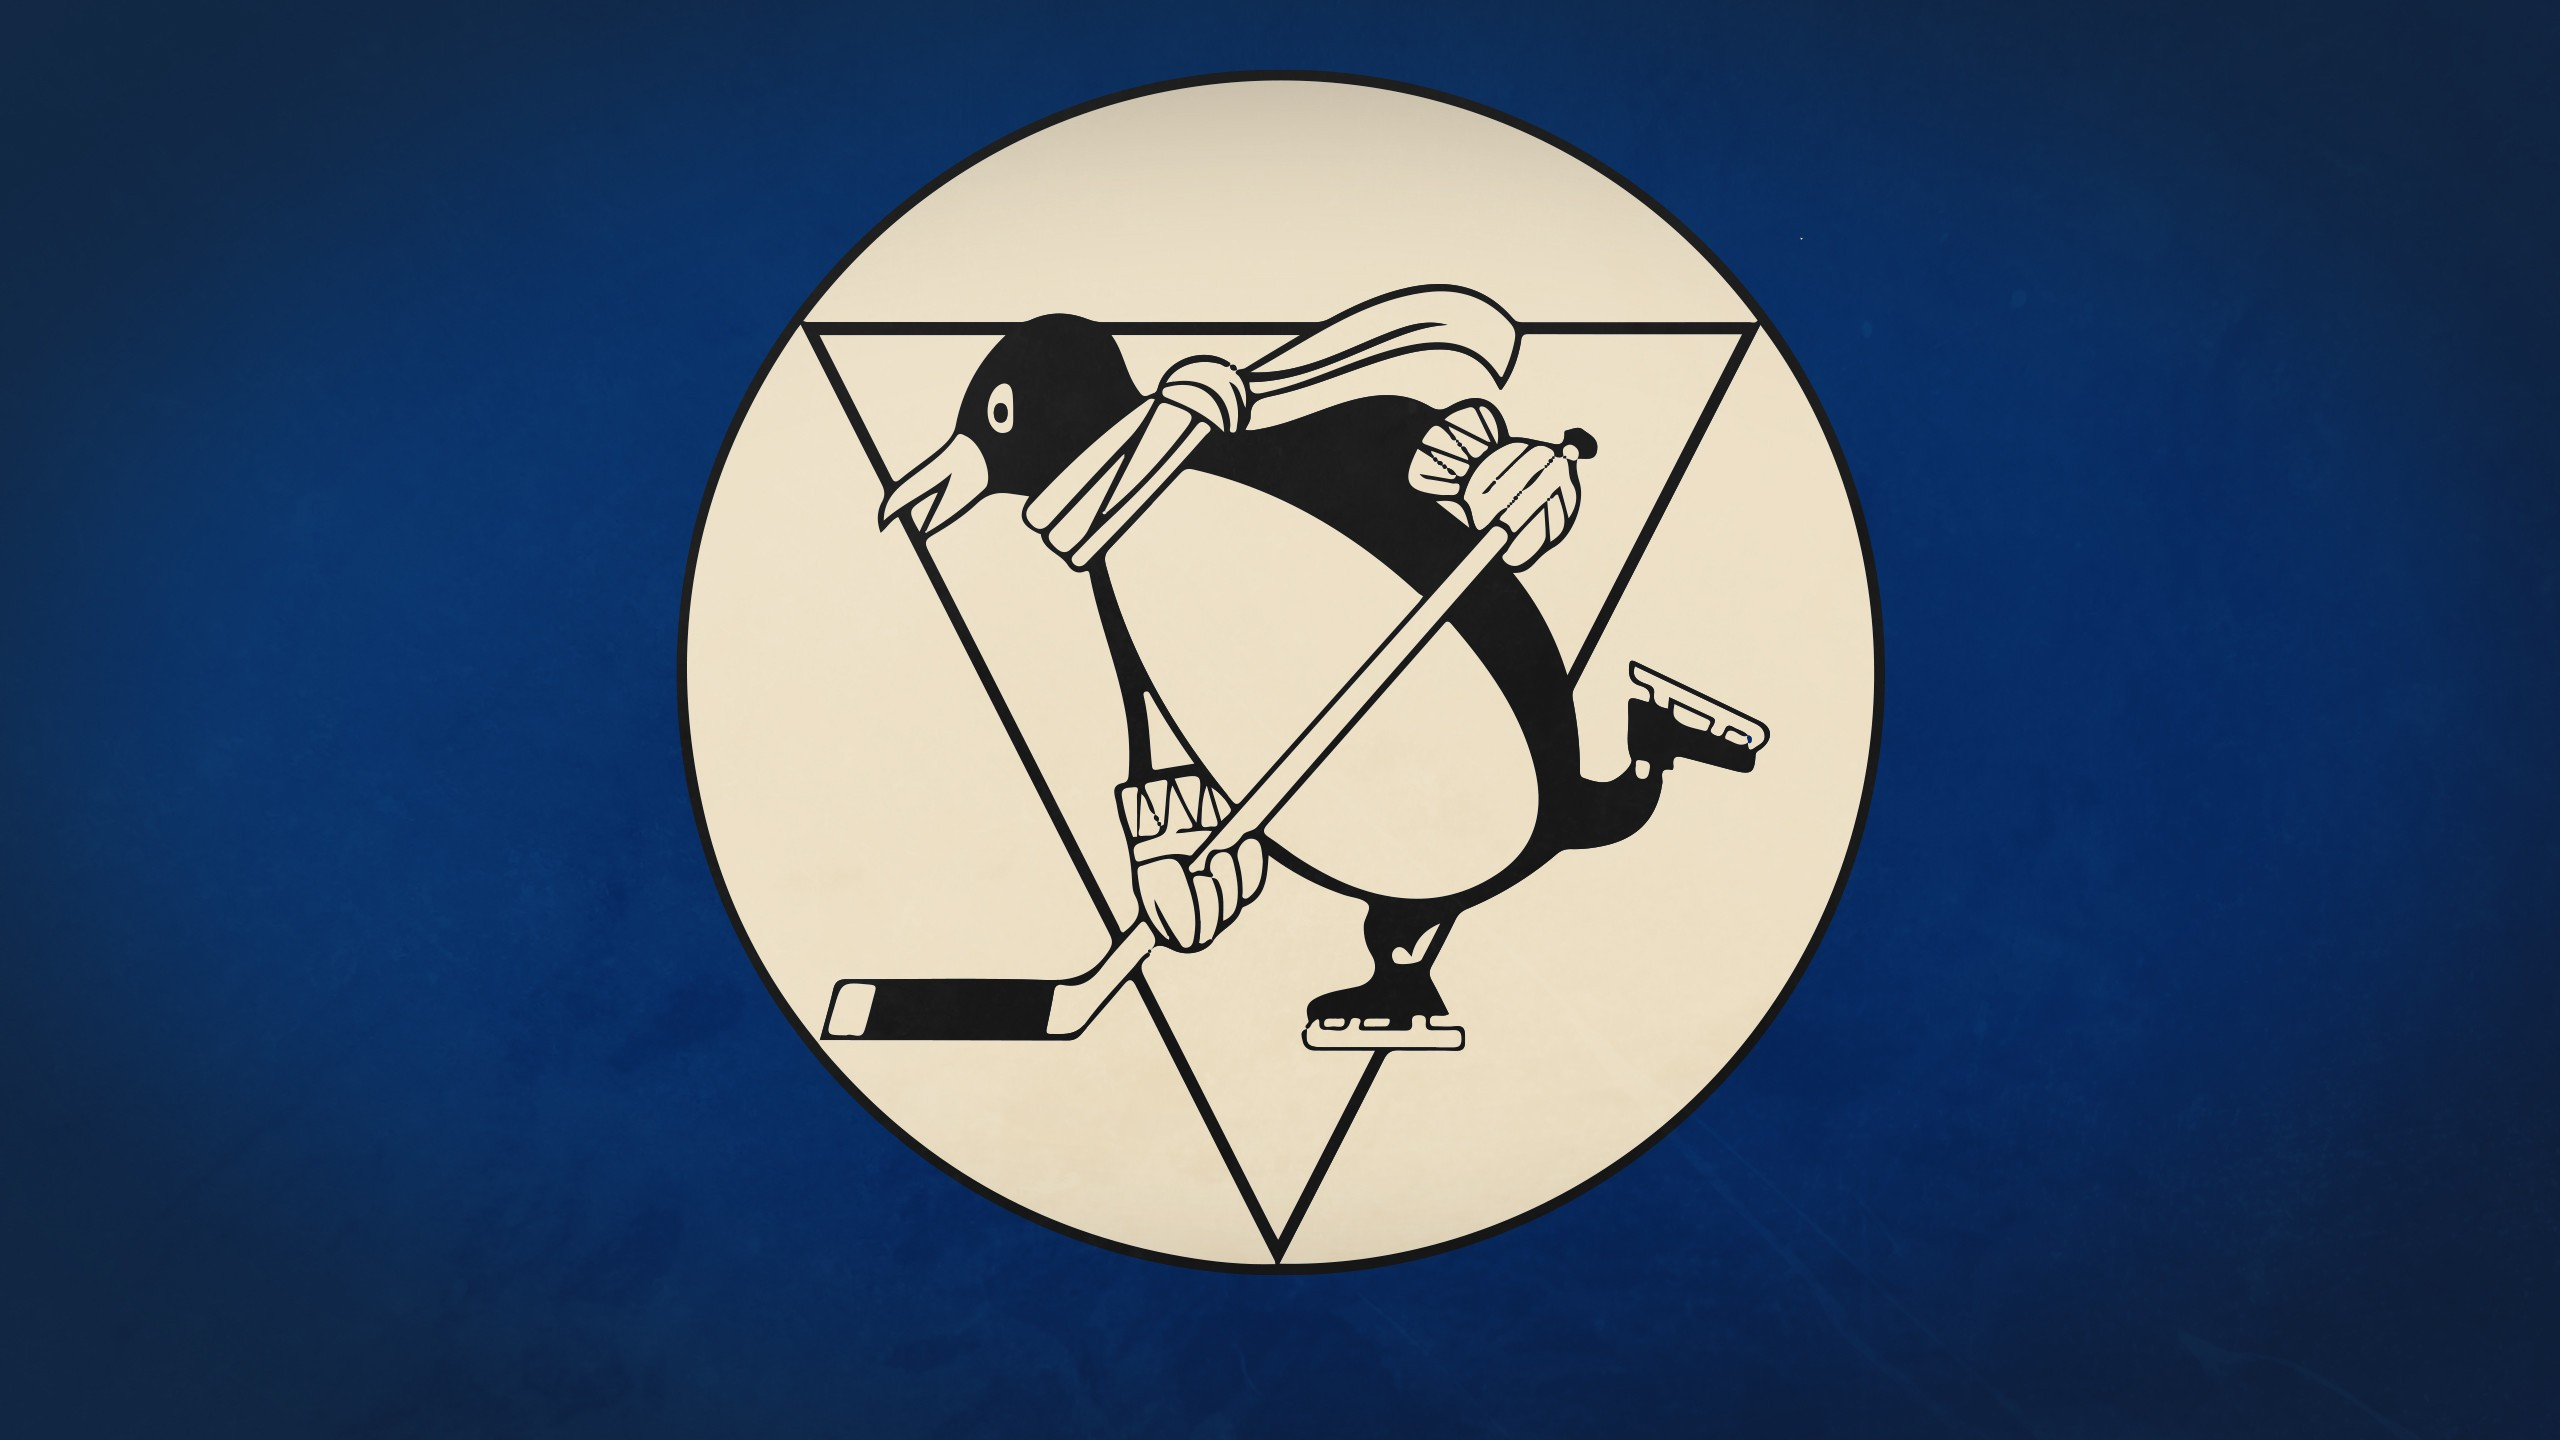 Pittsburgh Penguins HD Wallpaper | Background Image | 2560x1440 | ID:415087 - Wallpaper Abyss